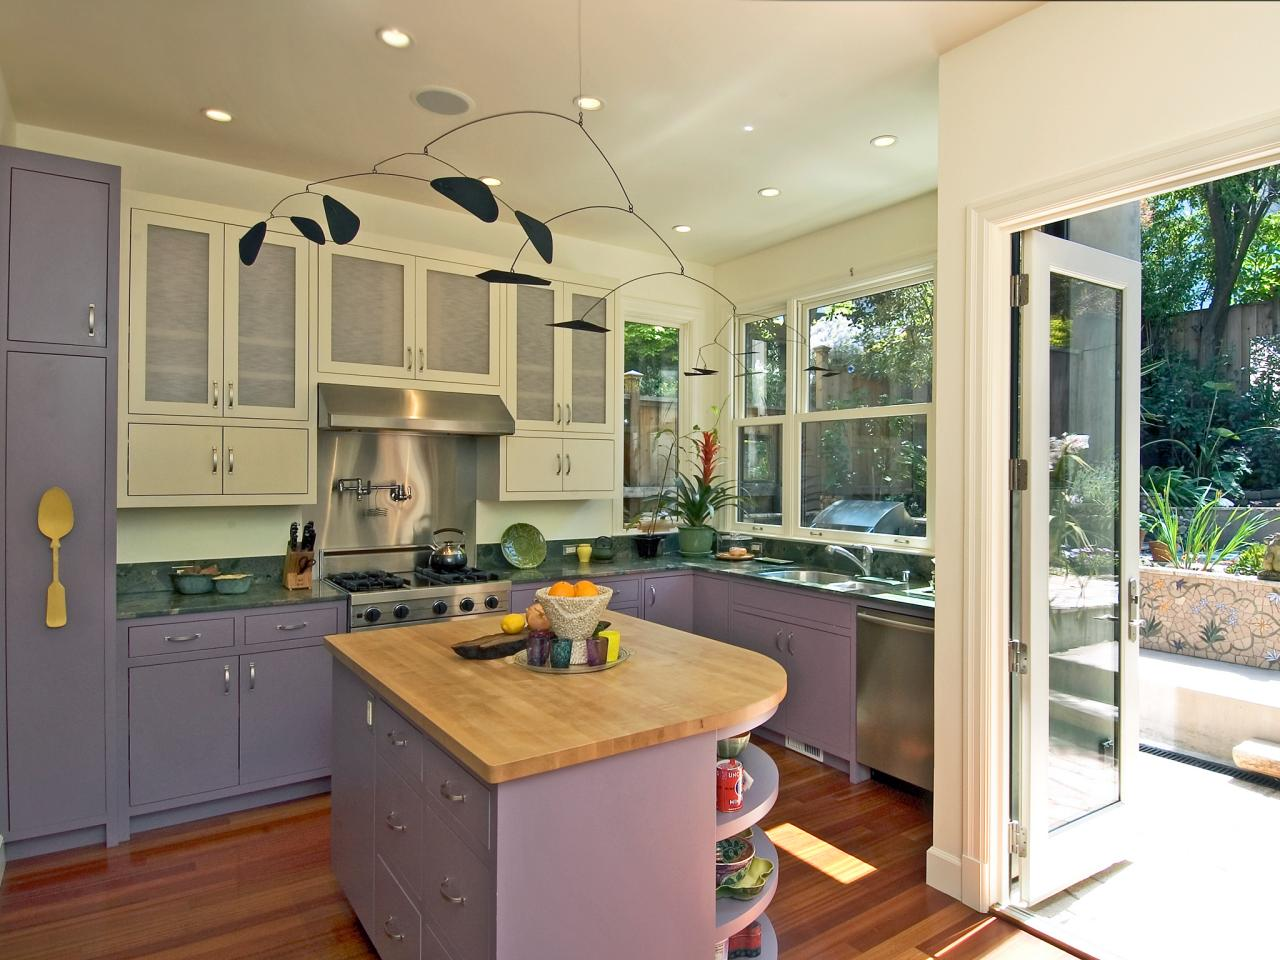 pale lavender kitchen with mobile this contemporary kitchen features